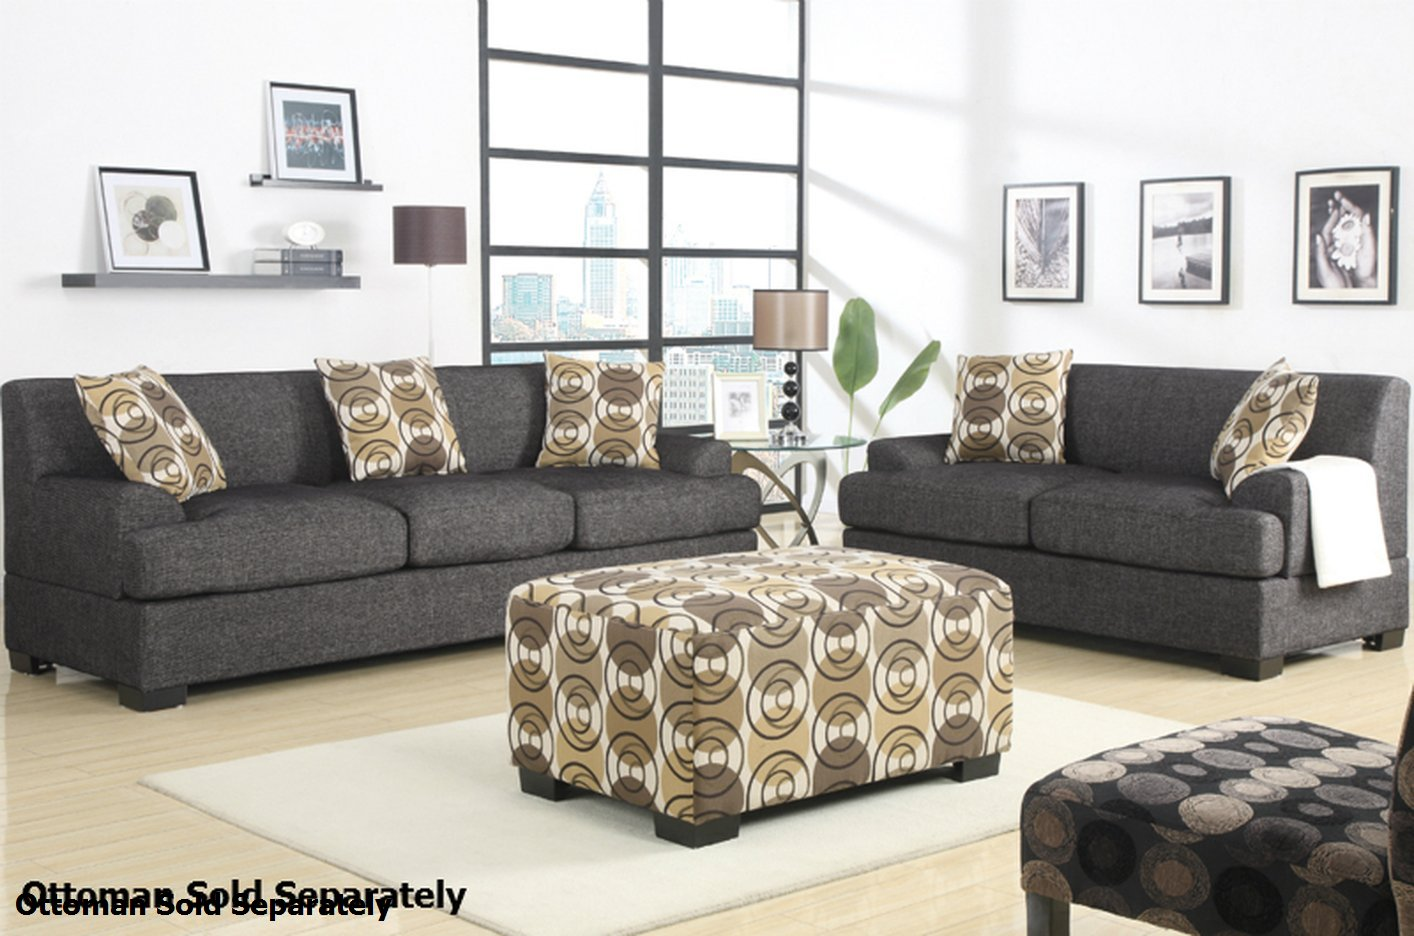 Poundex Montreal F7447 F7446 Grey Fabric Sofa And Loveseat Set Steal A Sofa Furniture Outlet